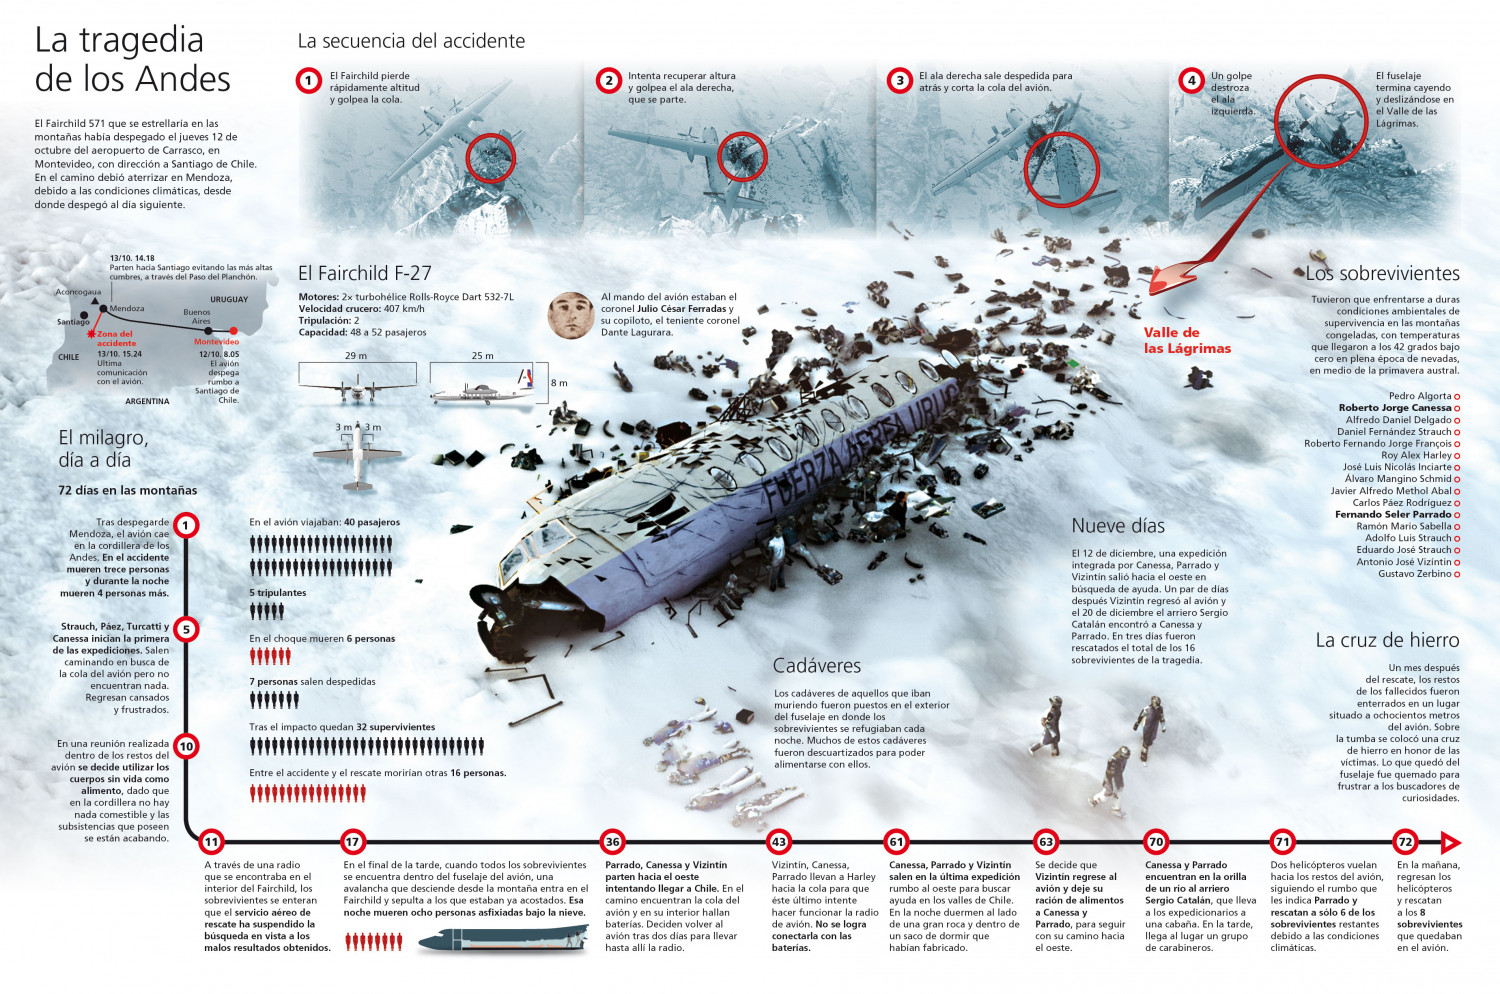 Los Andes Tragedy Infographic